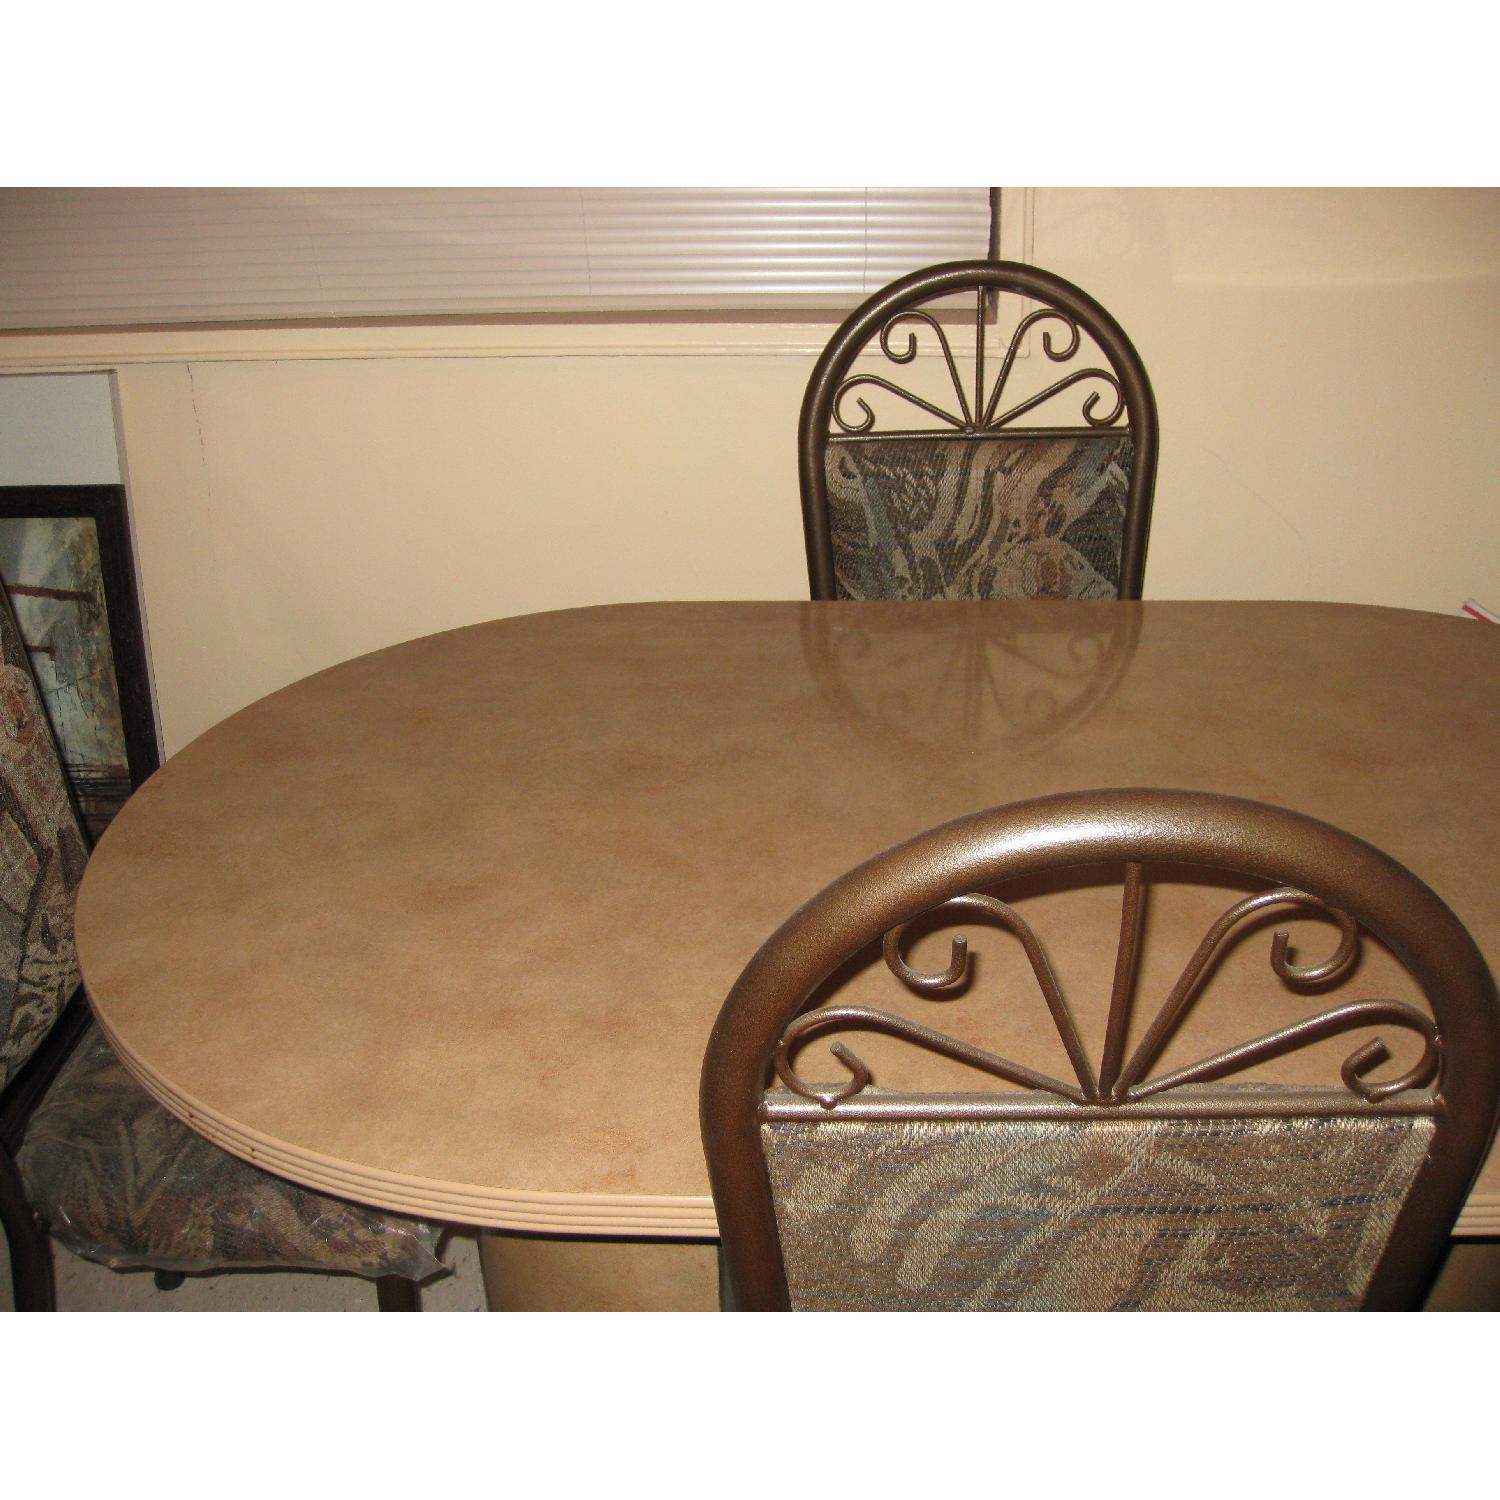 Ethan Allen Granite Marble Oval Dining Table in AptDeco : 1500 1500 frame 0 from www.aptdeco.com size 1500 x 1500 jpeg 220kB